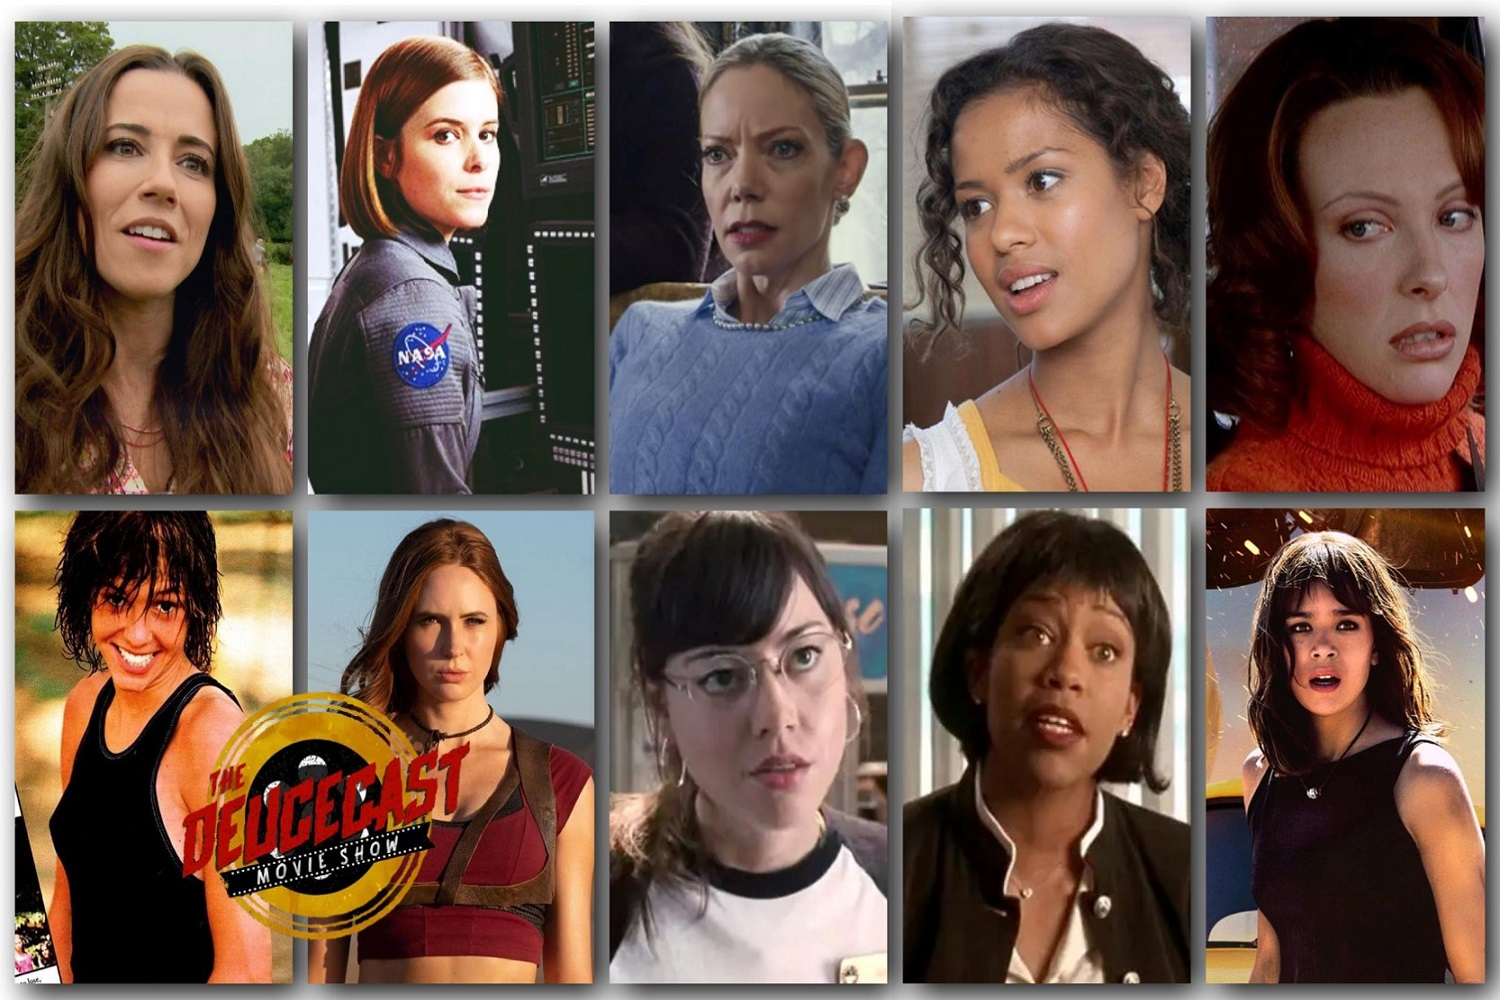 The Deucecast Movie Show #478: Actresses Who Make Everything Better